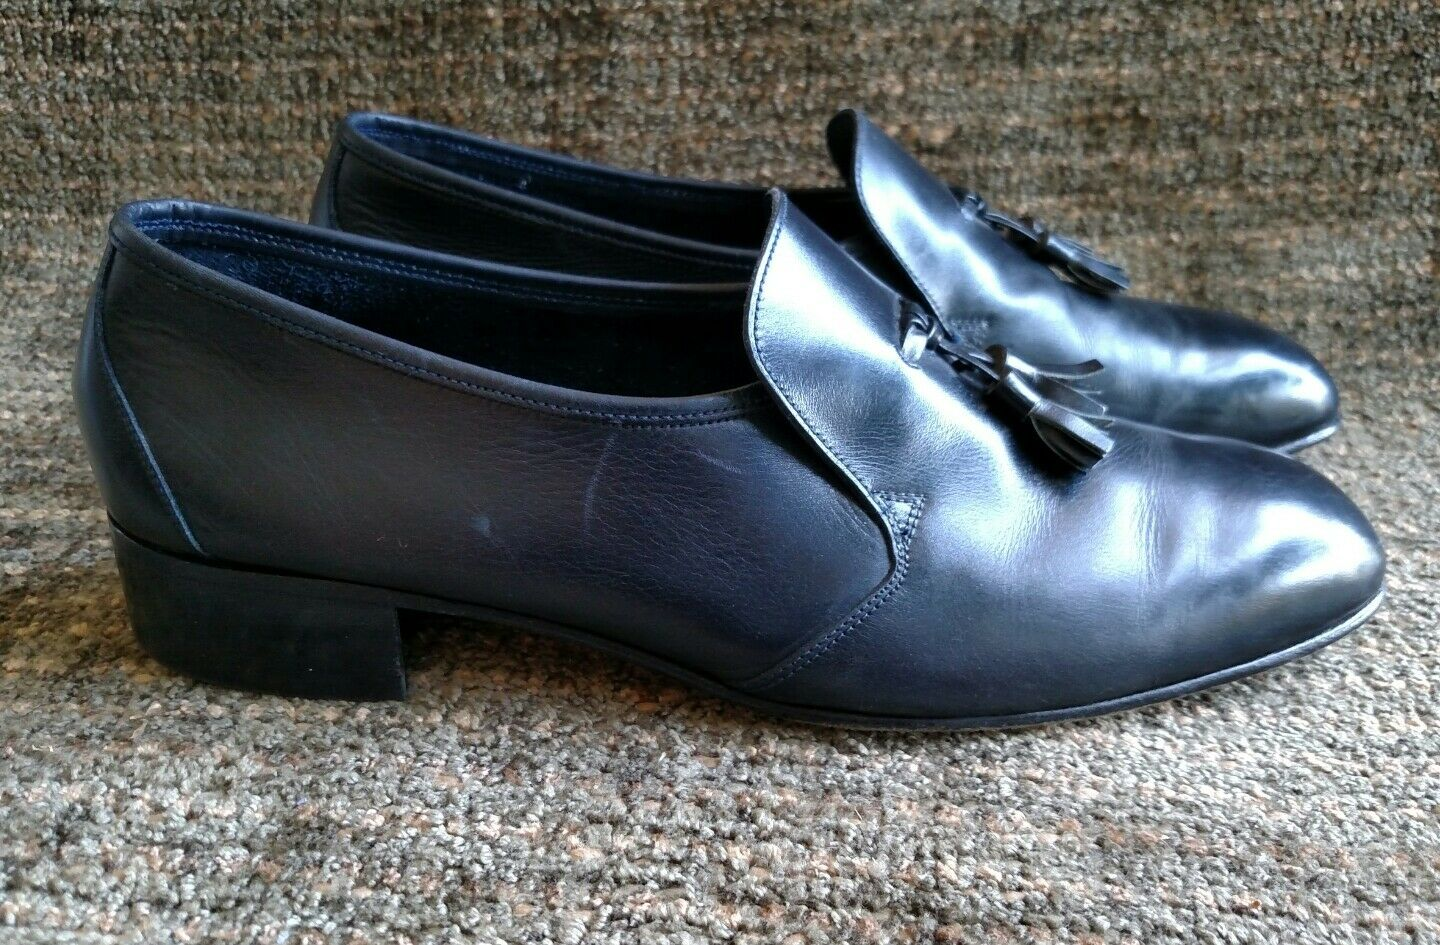 Bally Continental Gerald black leather tassel loafers size 9 M